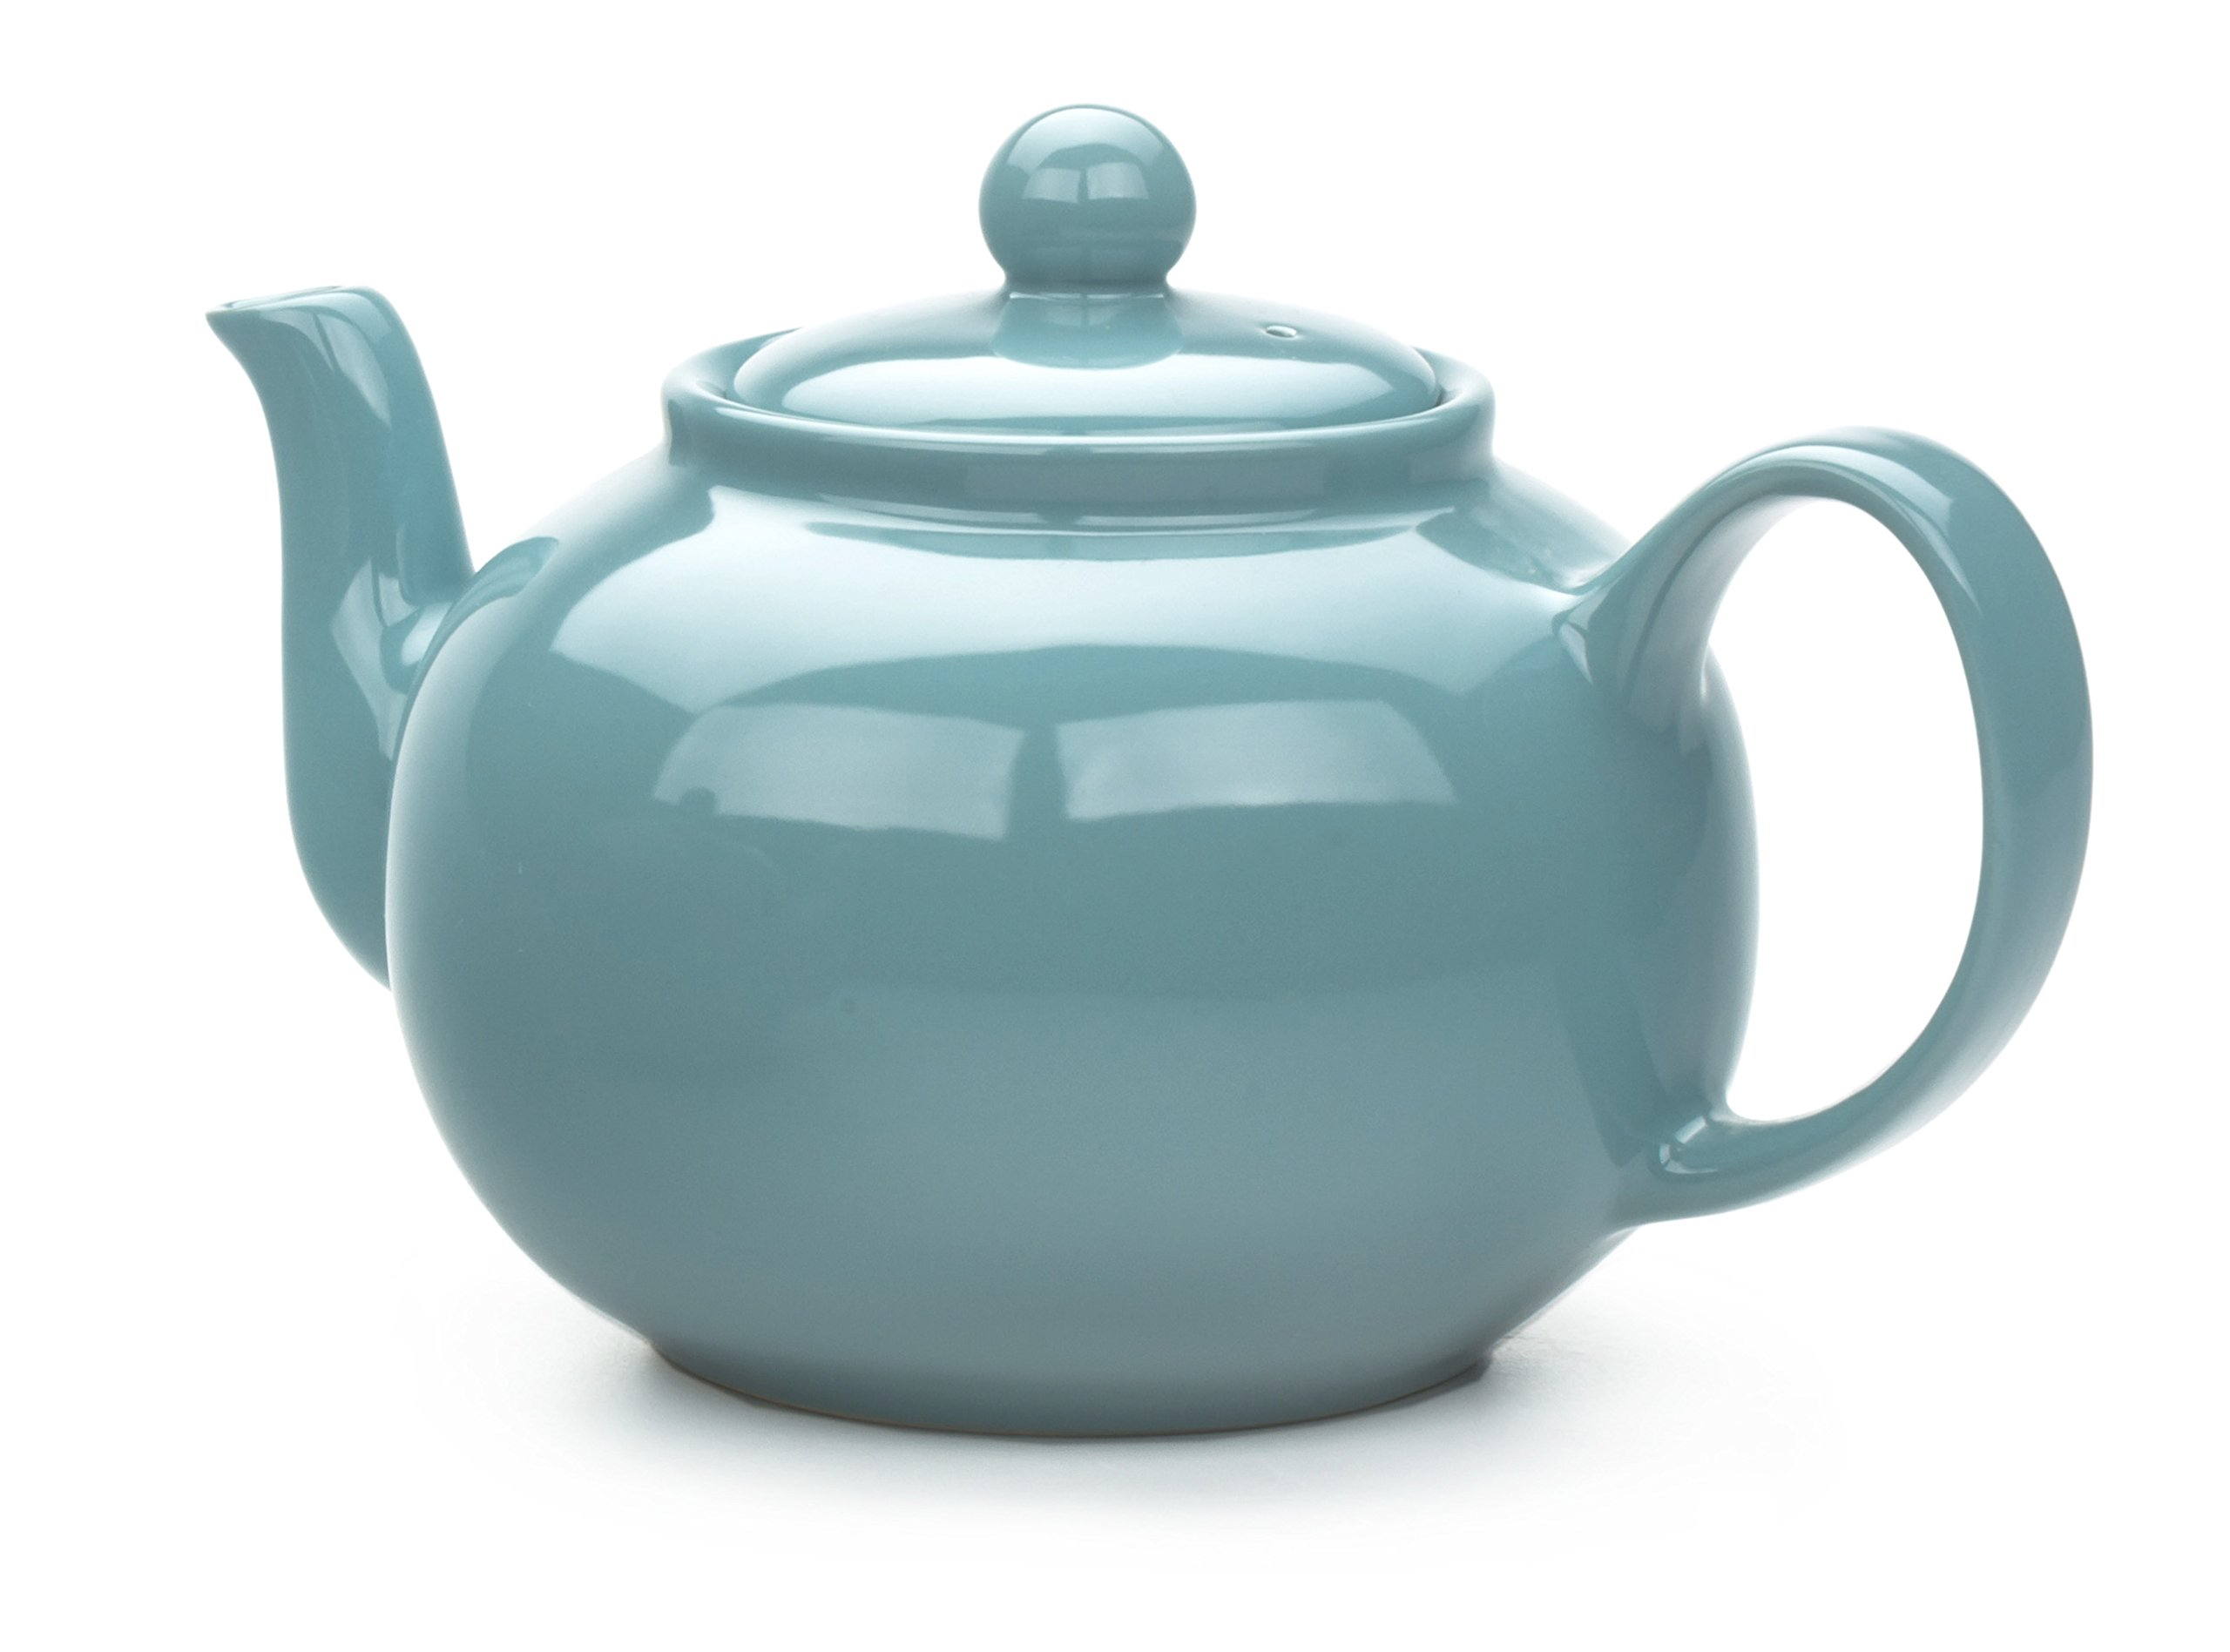 RSVP Large Stoneware 6-Cup Teapot, Turquoise by RSVP International